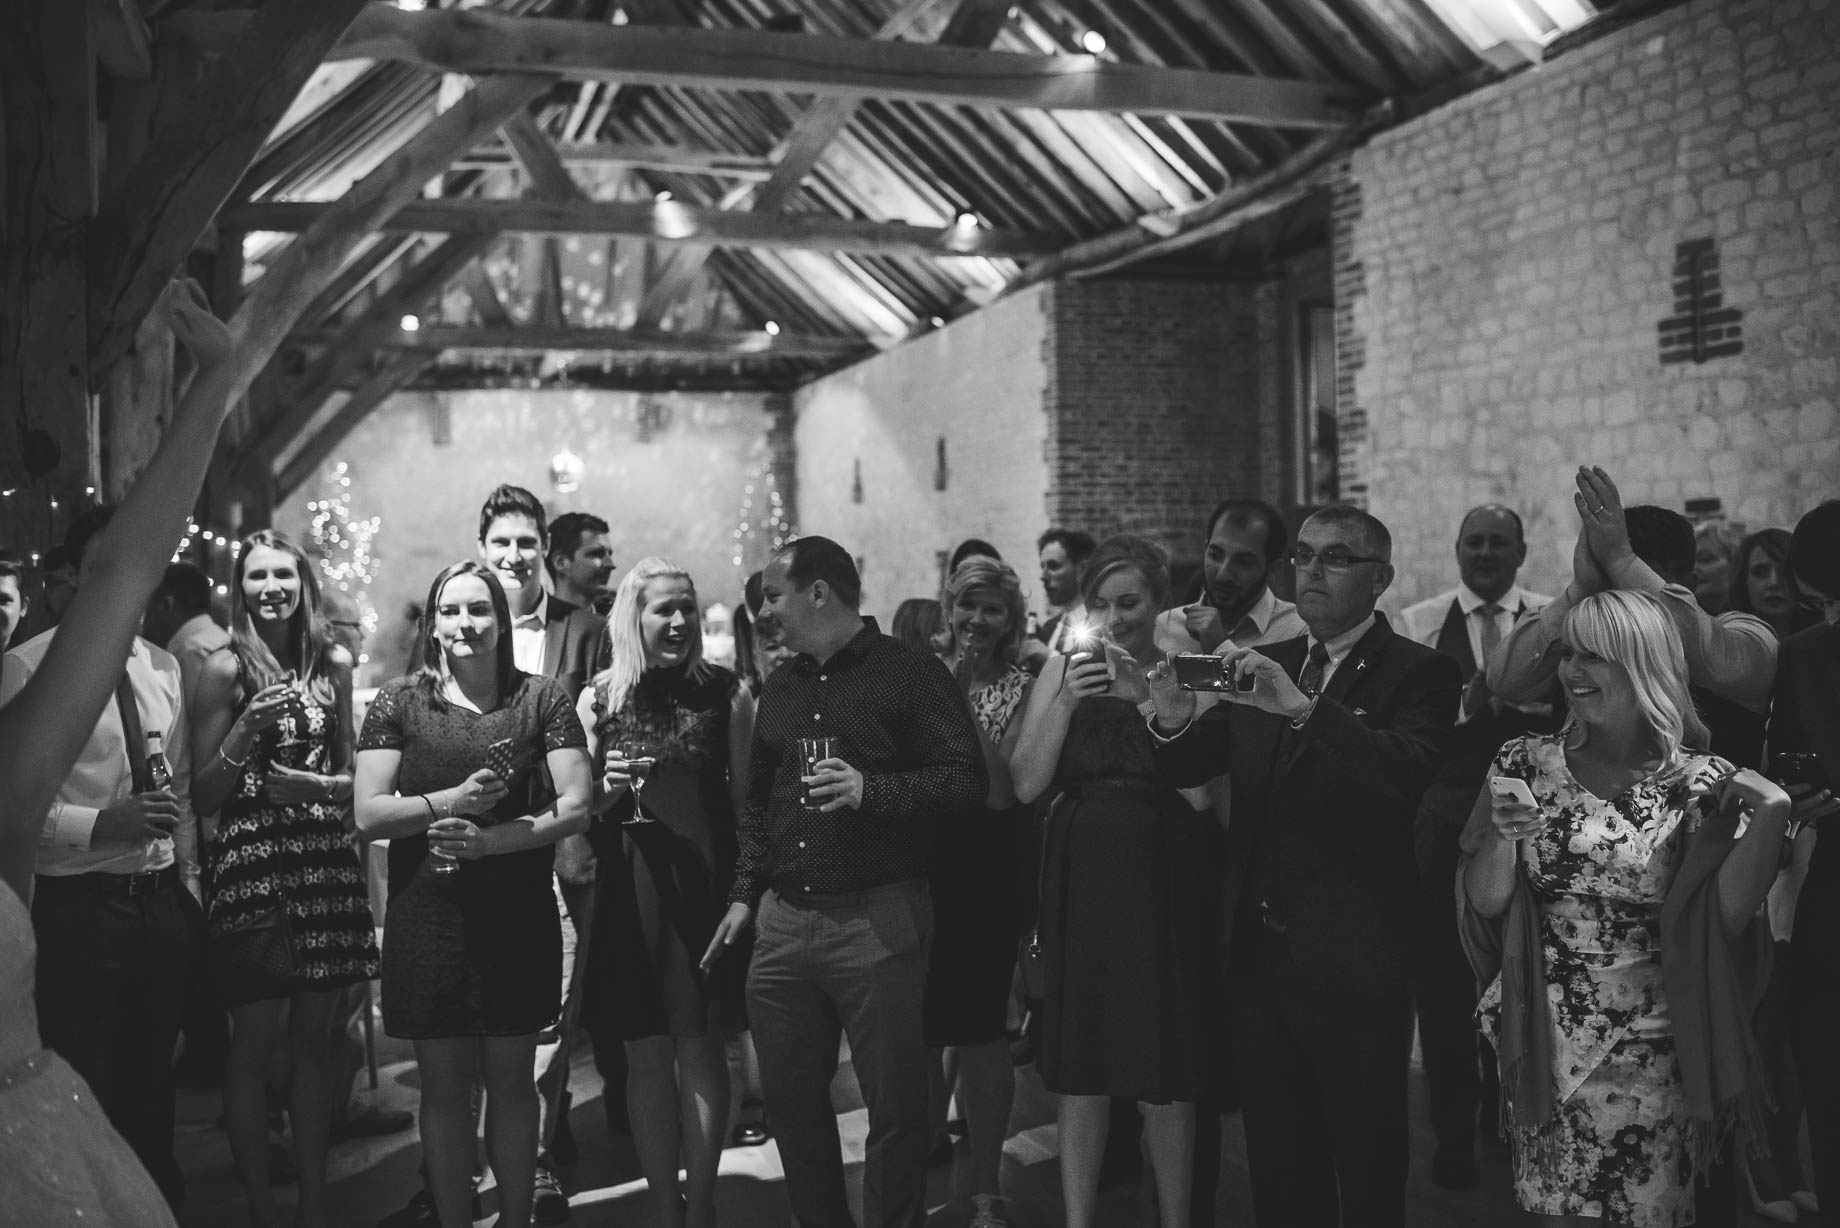 Bury Court Barn wedding photography - Guy Collier - Kirsty and Lewis (139 of 150)